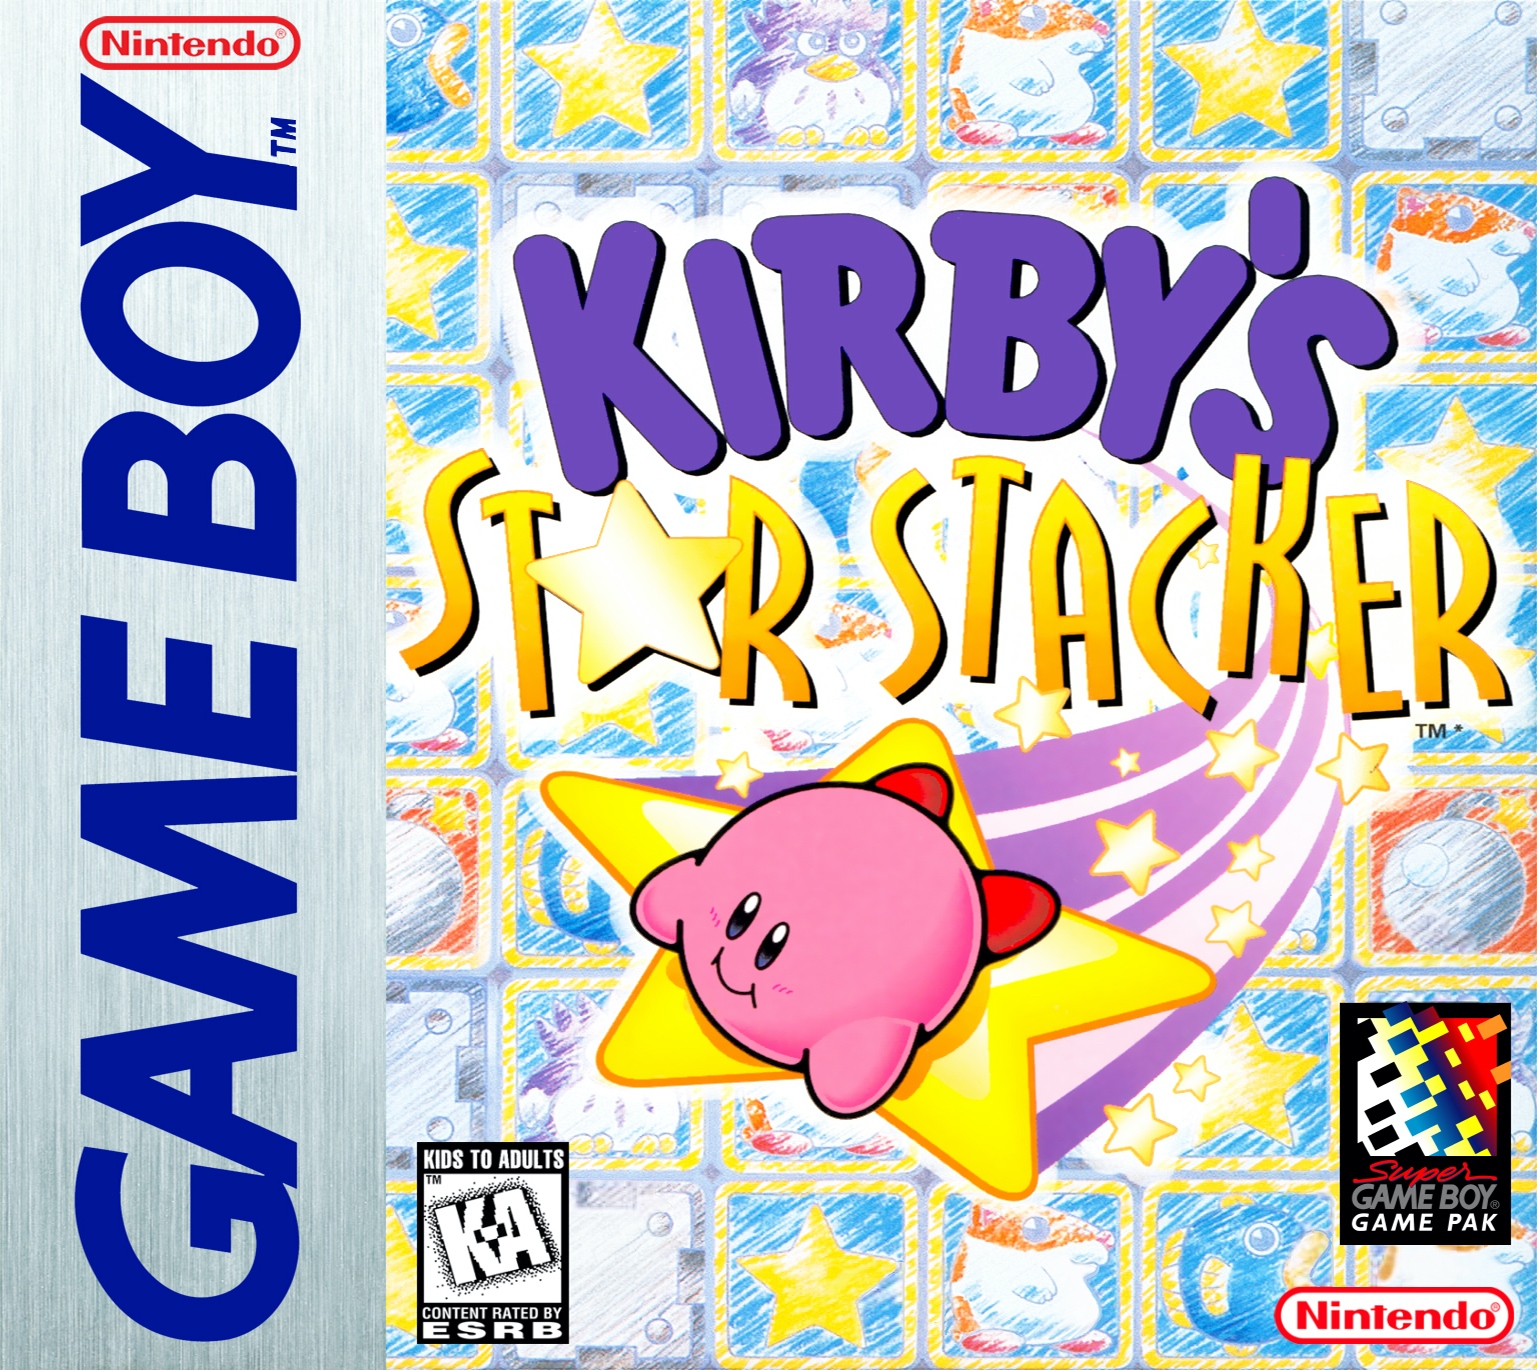 Box artwork for Kirby's Star Stacker.